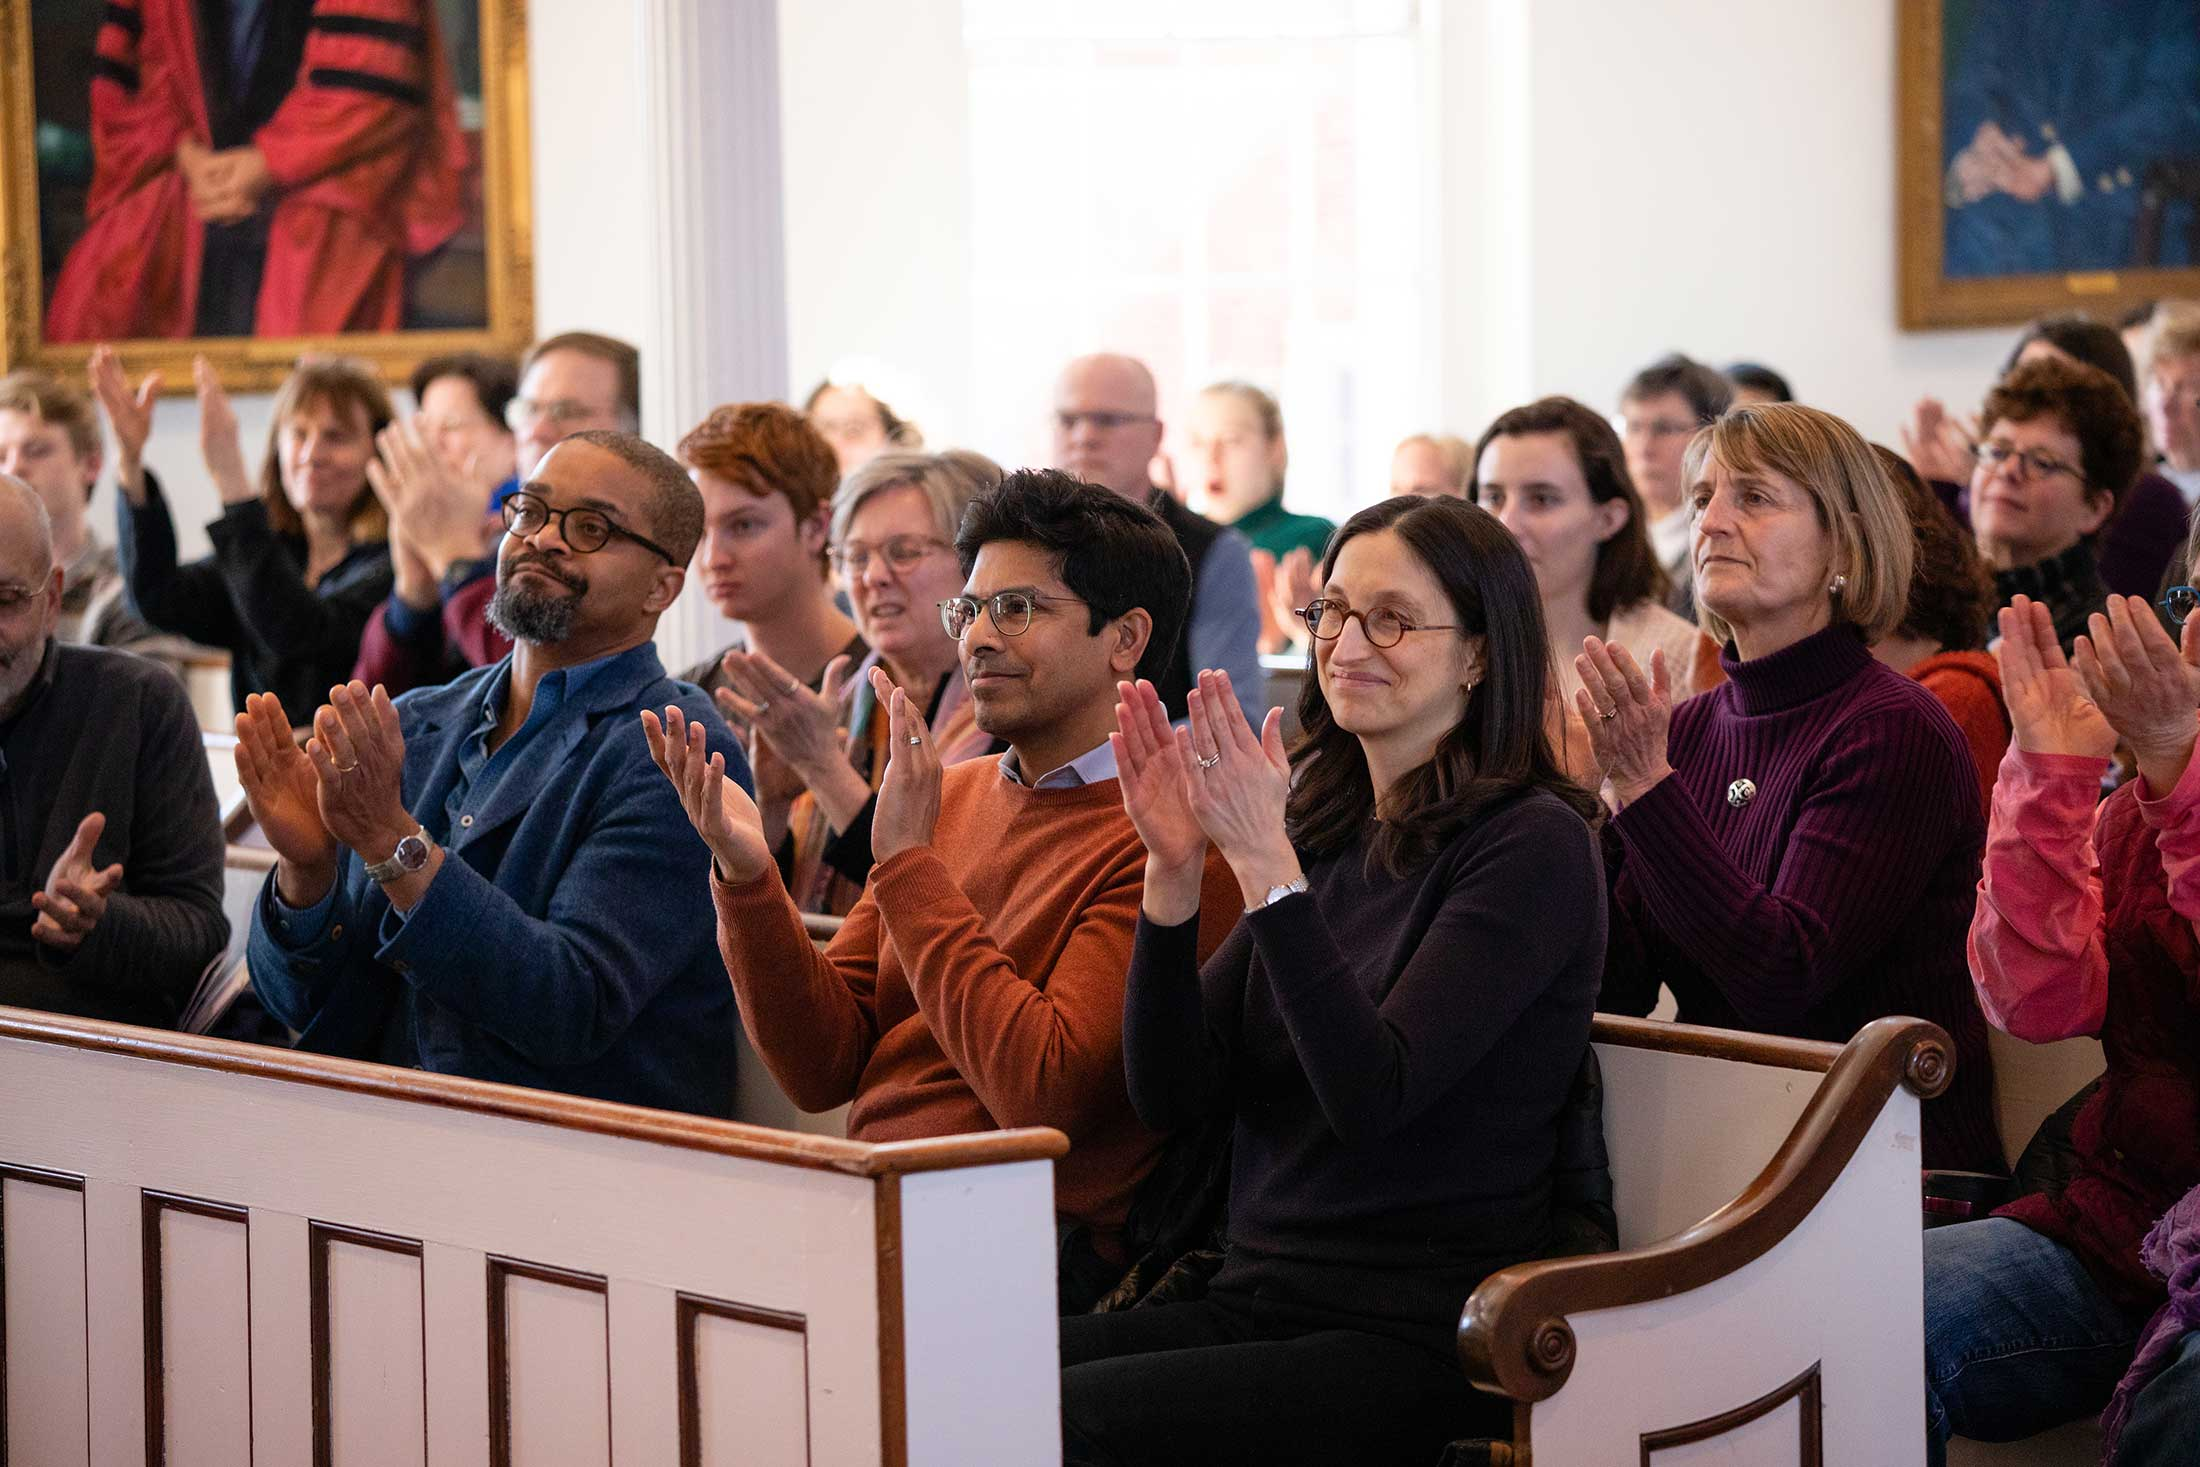 LitFest audience members in Johnson Chapel applauding